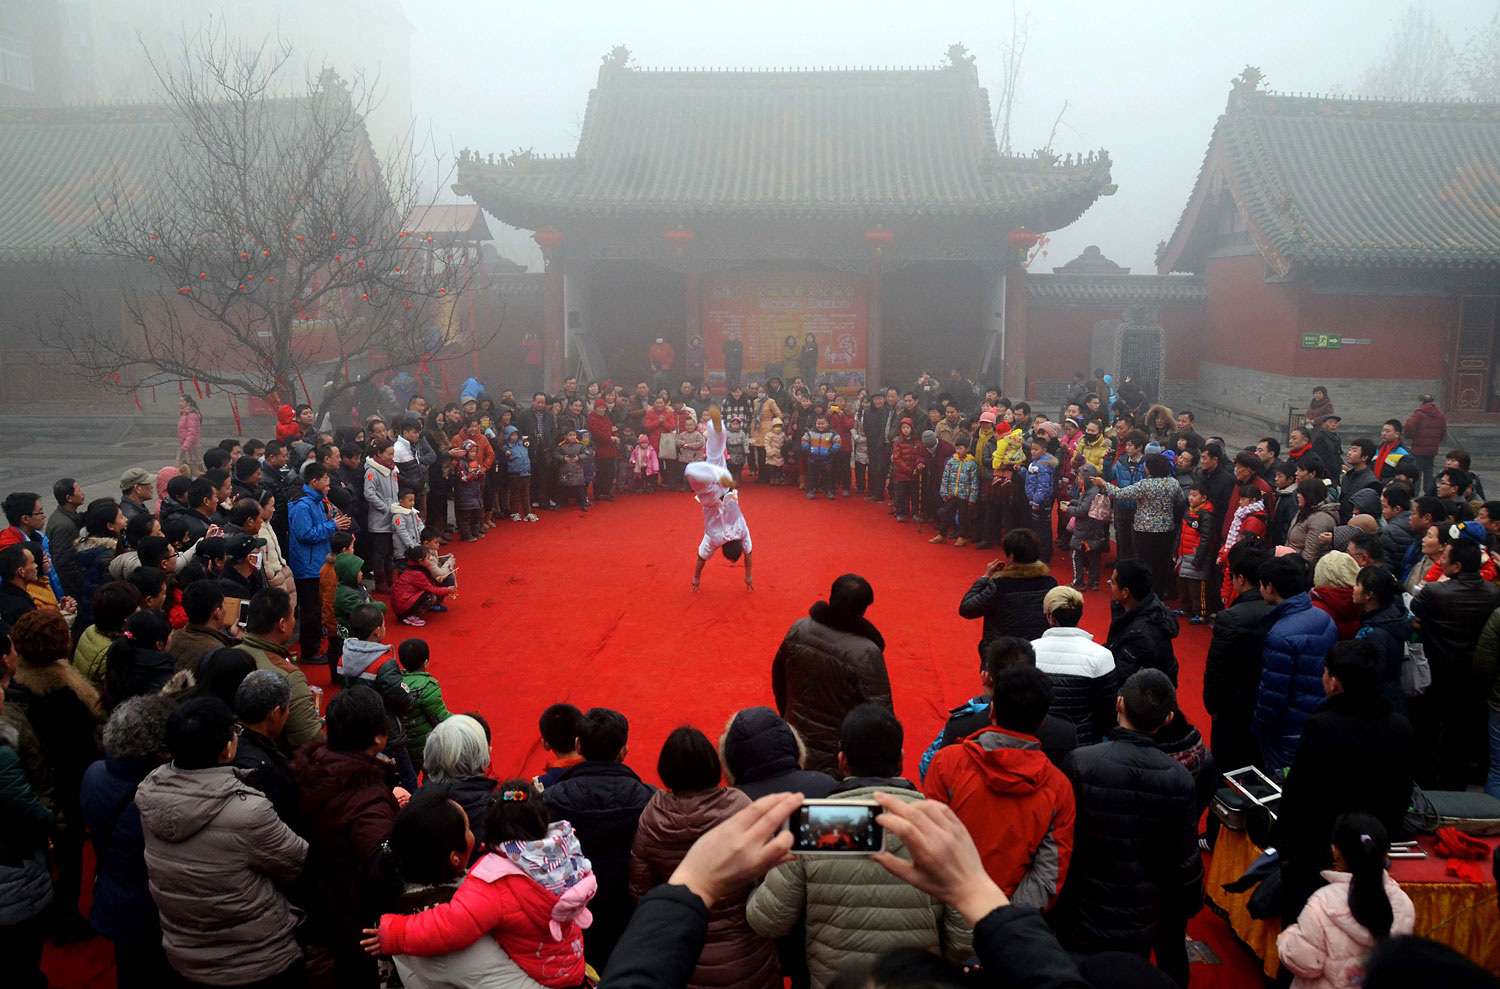 Visitors view a performance at a temple fair celebrating the Lunar New Year, known as the Spring Festival, in Zhengzhou, capital of Central China's Henan Province, Jan. 31, 2014.